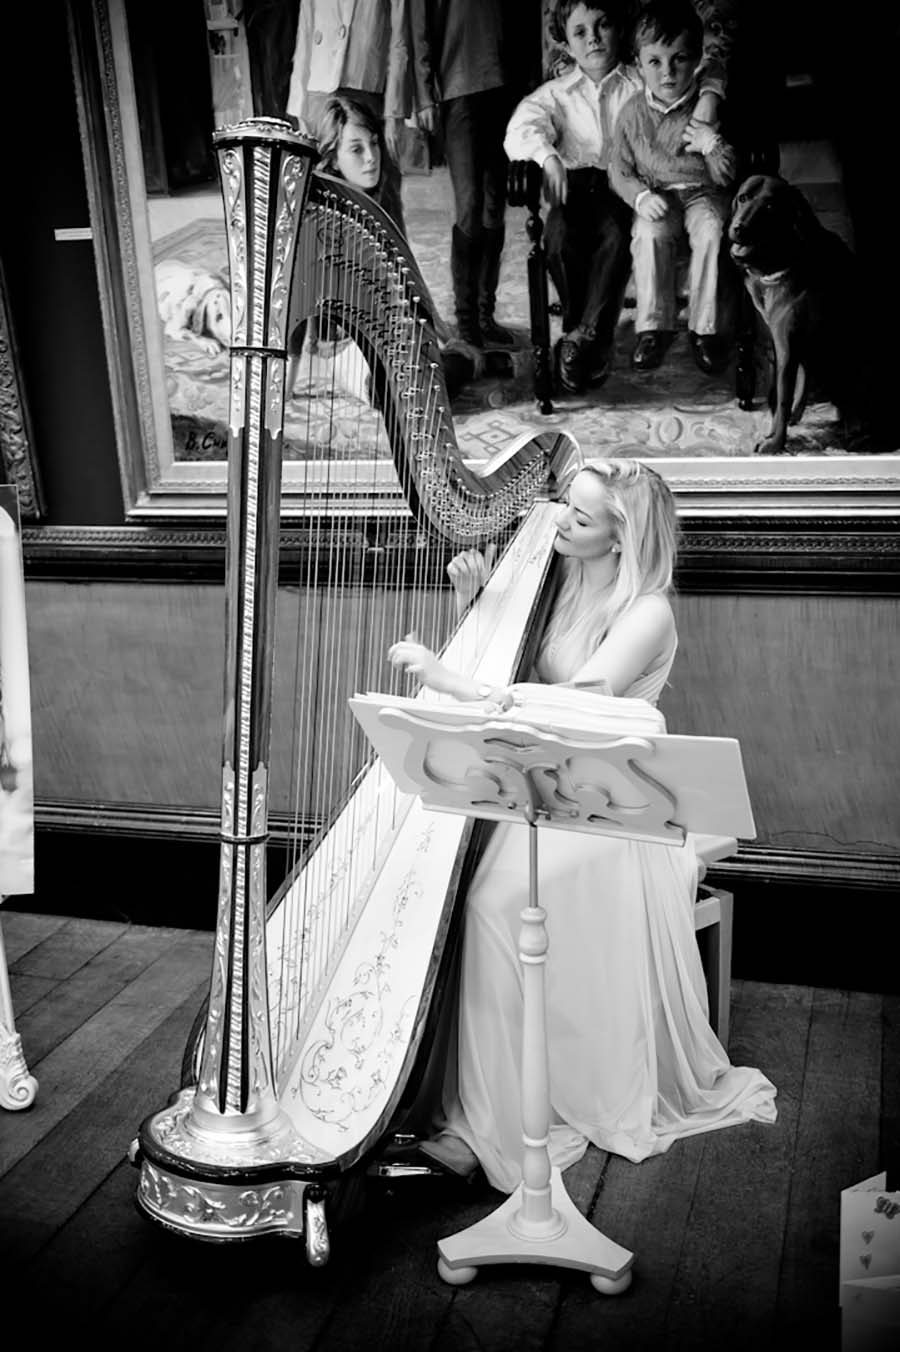 Buckinghams-at-belvoir-castle-wedding-fair-rachael-connerton-photography-40